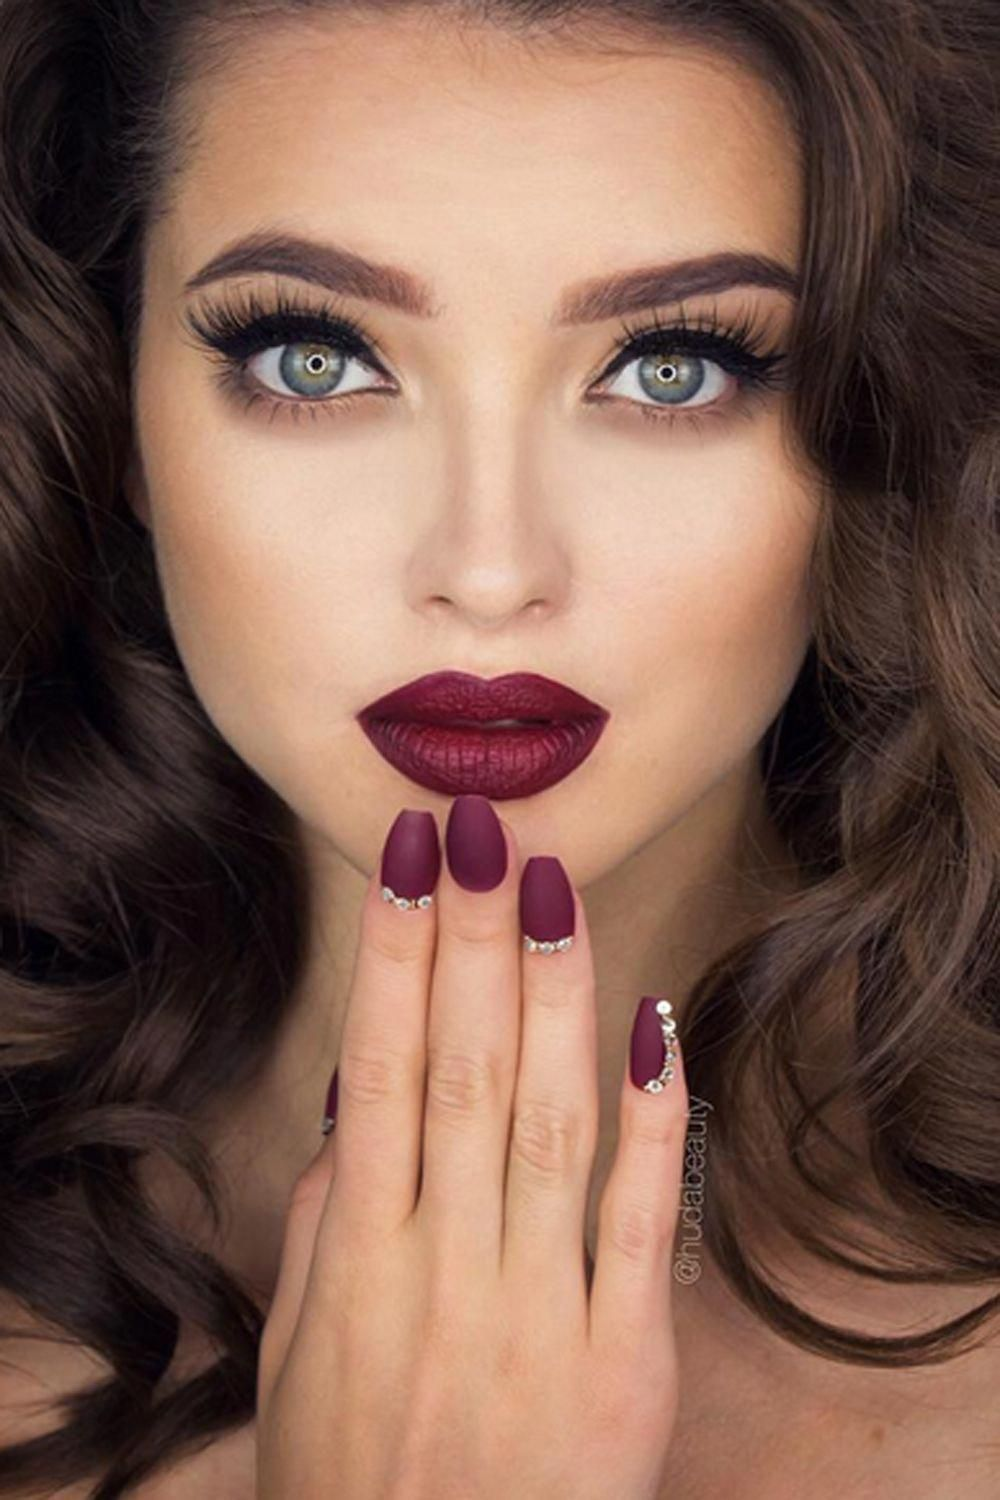 Teeth Nails Wedding Makeup Red Lips Best Photos Wedding Make